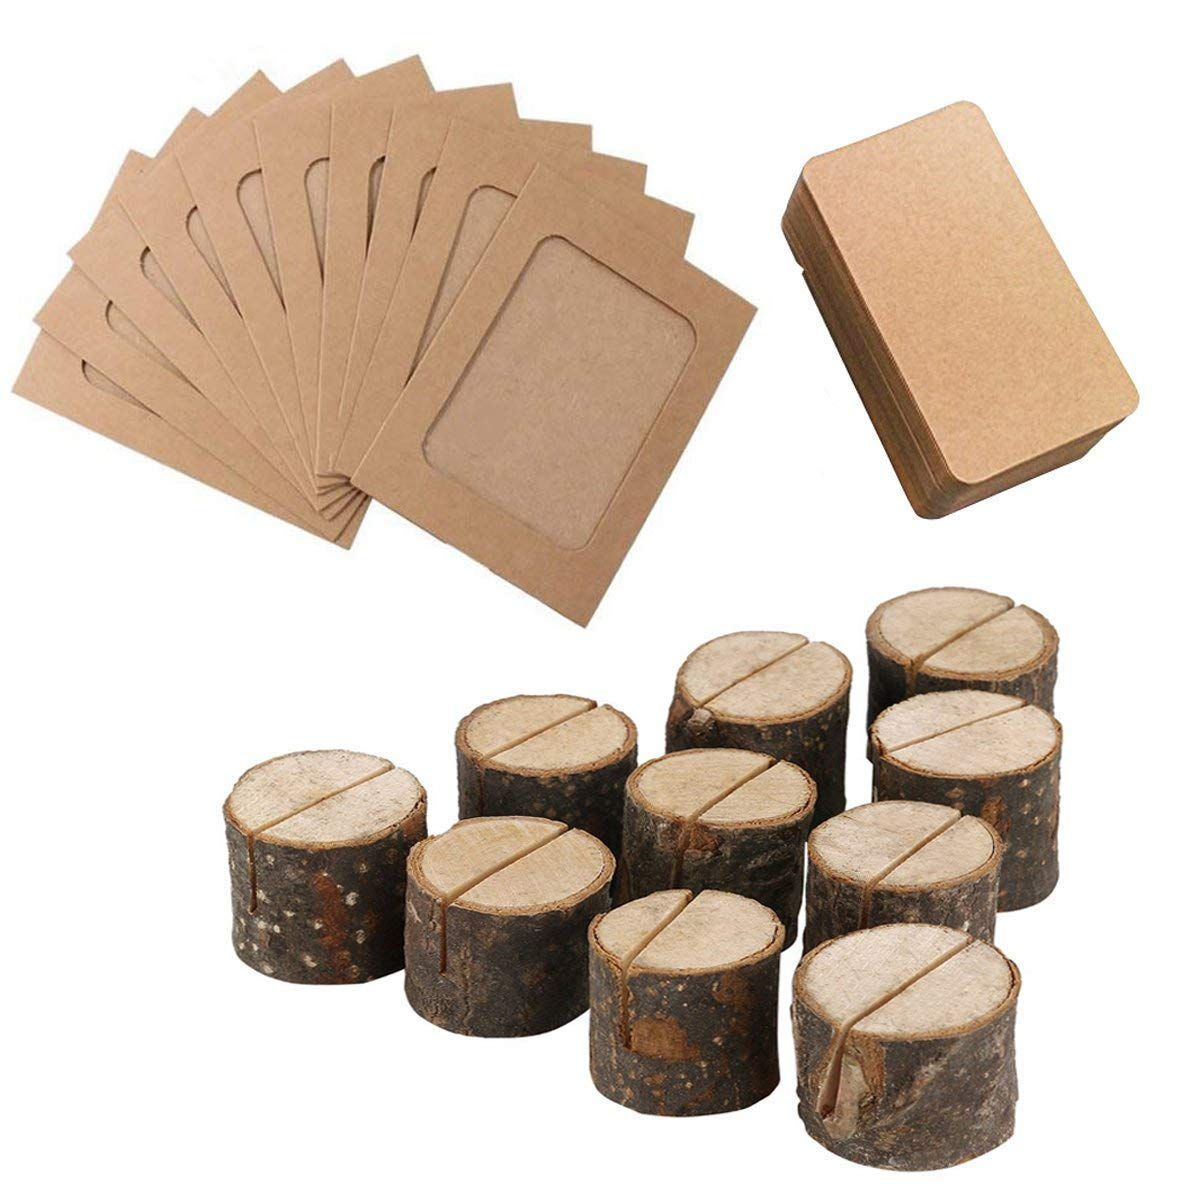 JINMURY 10Pcs Wood Table Numbers Holder Wooden Place Card Holder Rustic Party Wedding Table Name Card Holder and 10Blank Kraft Memo Business Card/10DIY Paper Photo Frame, Super Value Set (Brown)